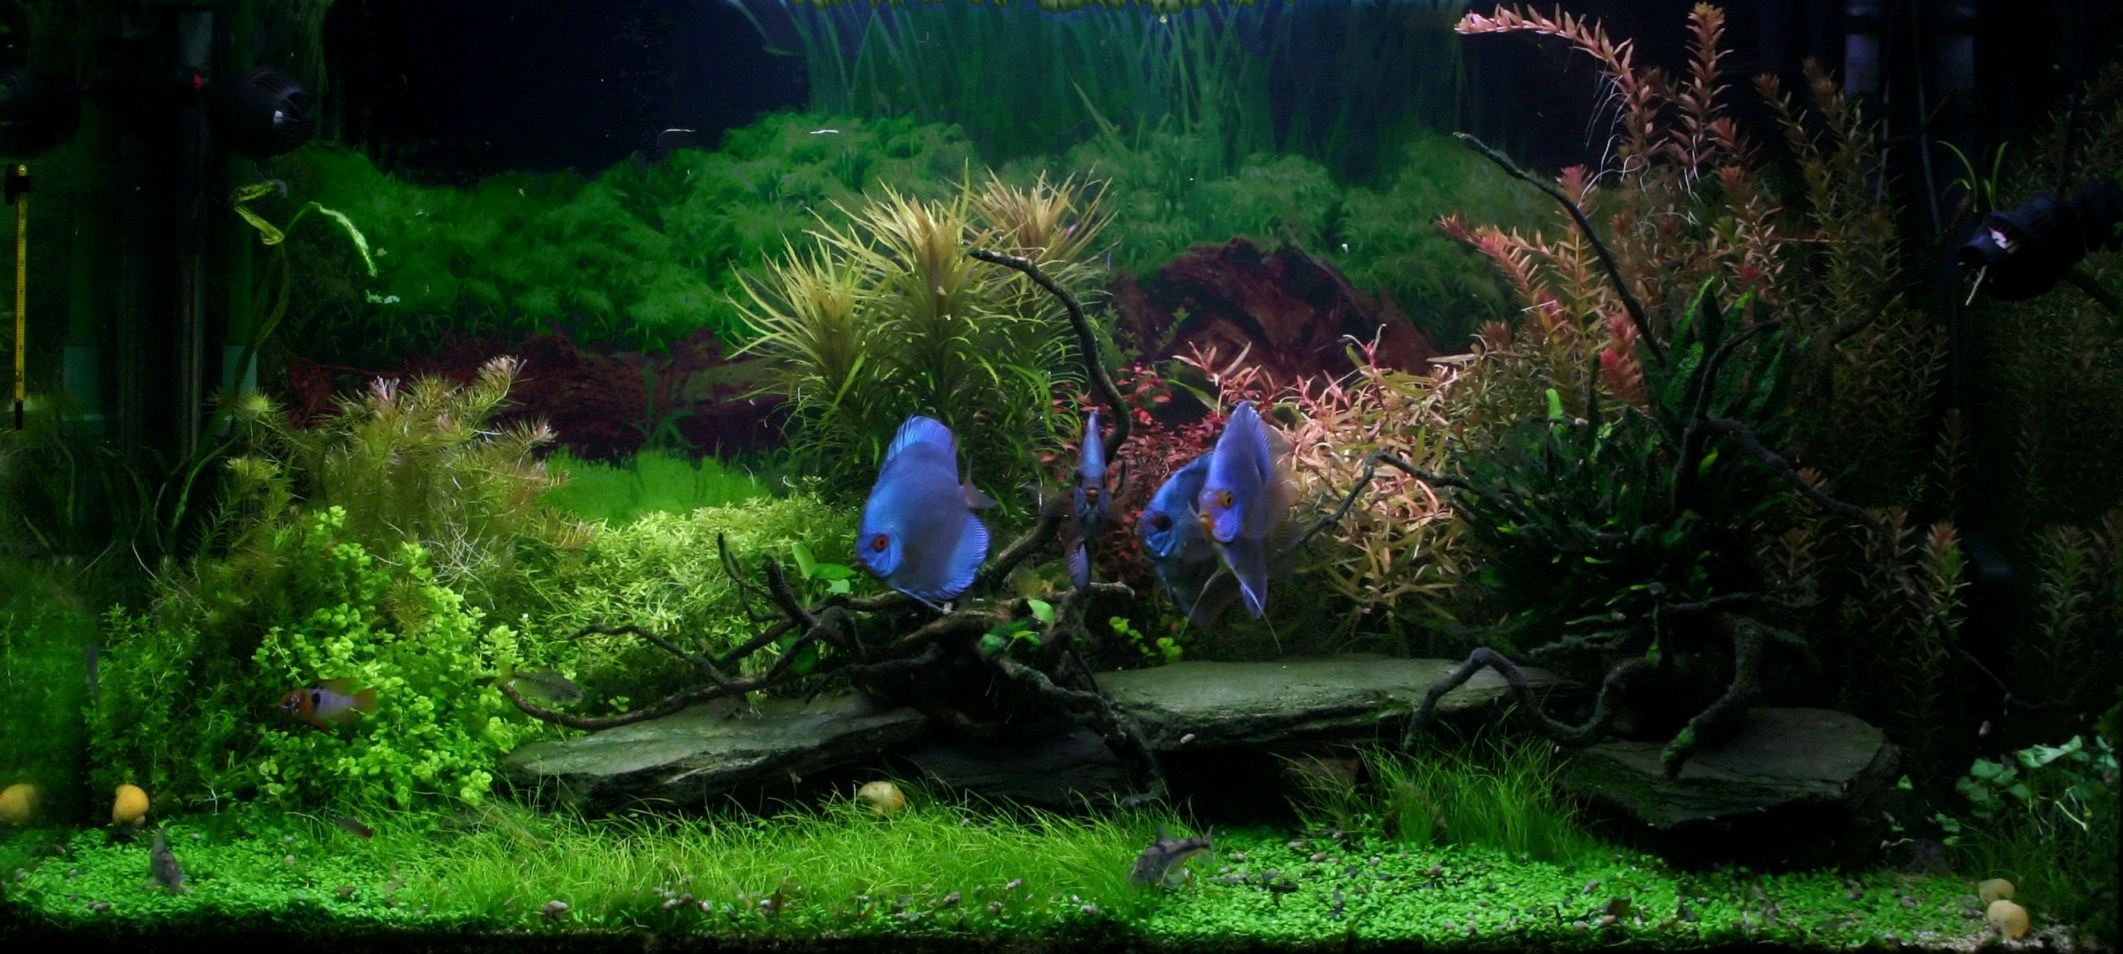 Comment devenir aquariophile for Aquarium maison